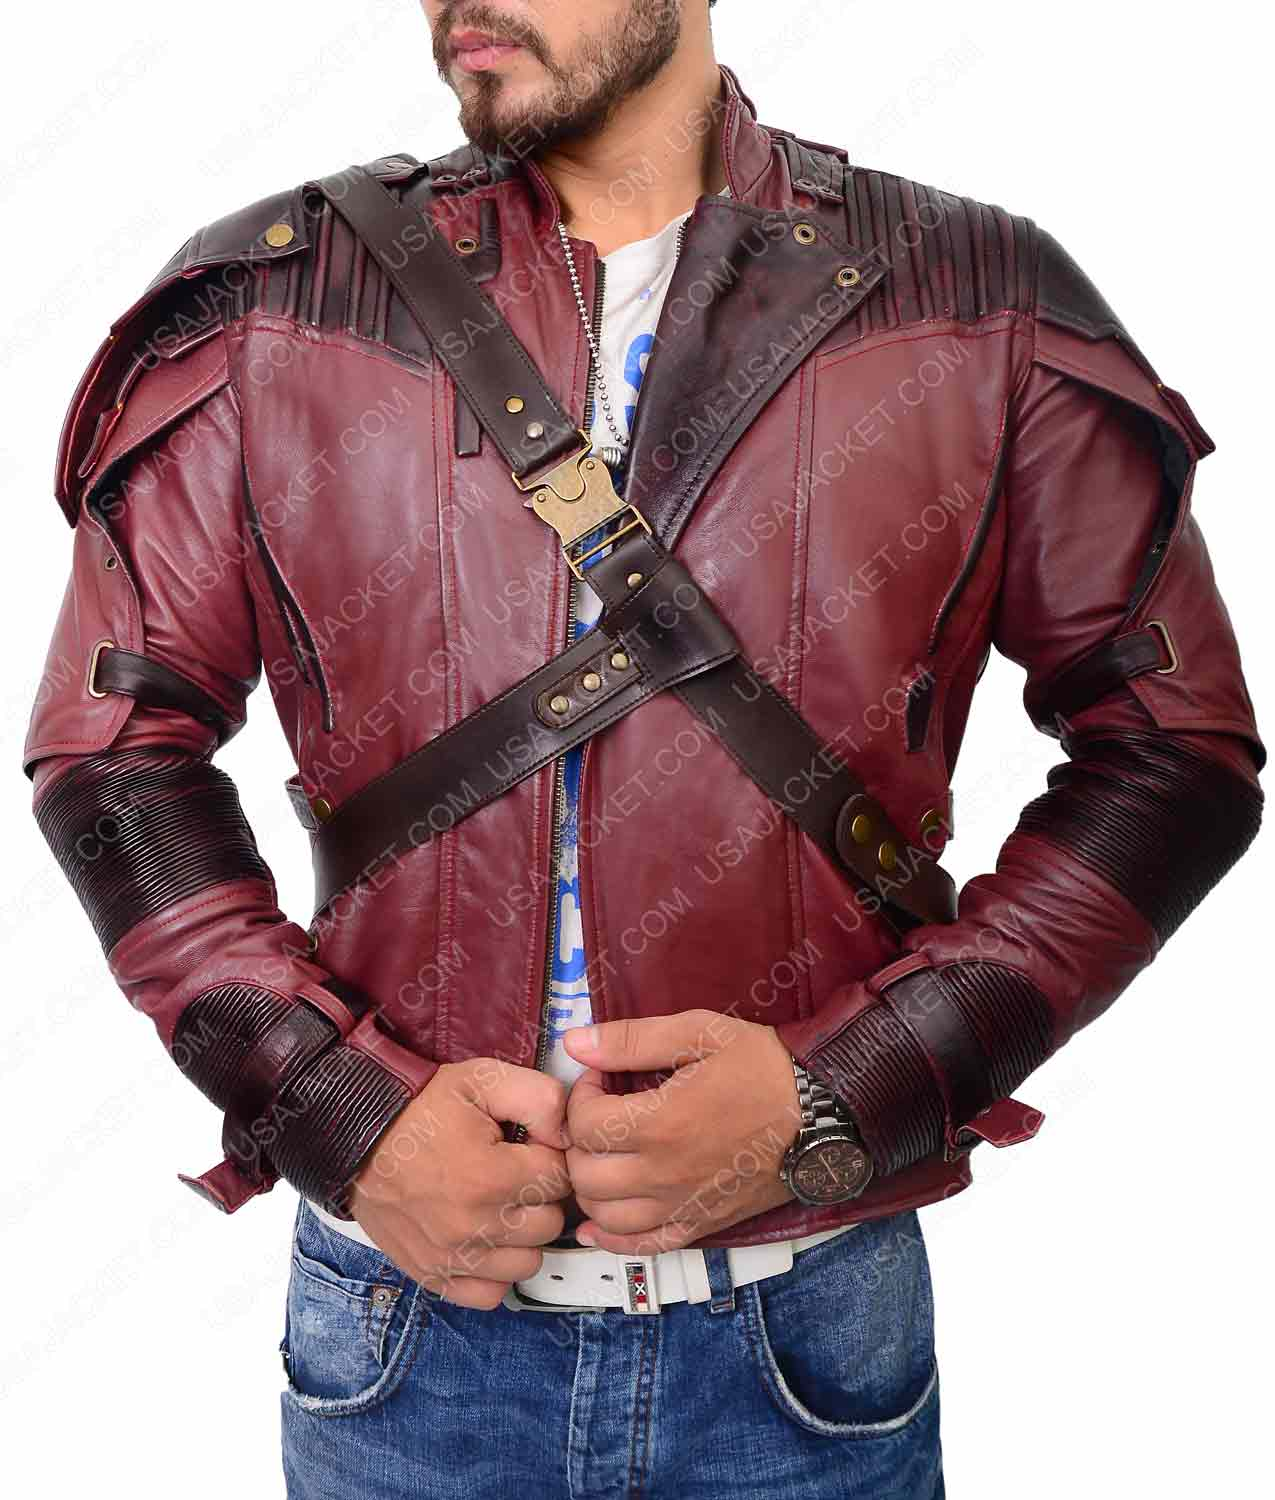 d8fadccc7 Star Lord Jacket From Guardians of the Galaxy Vol 2